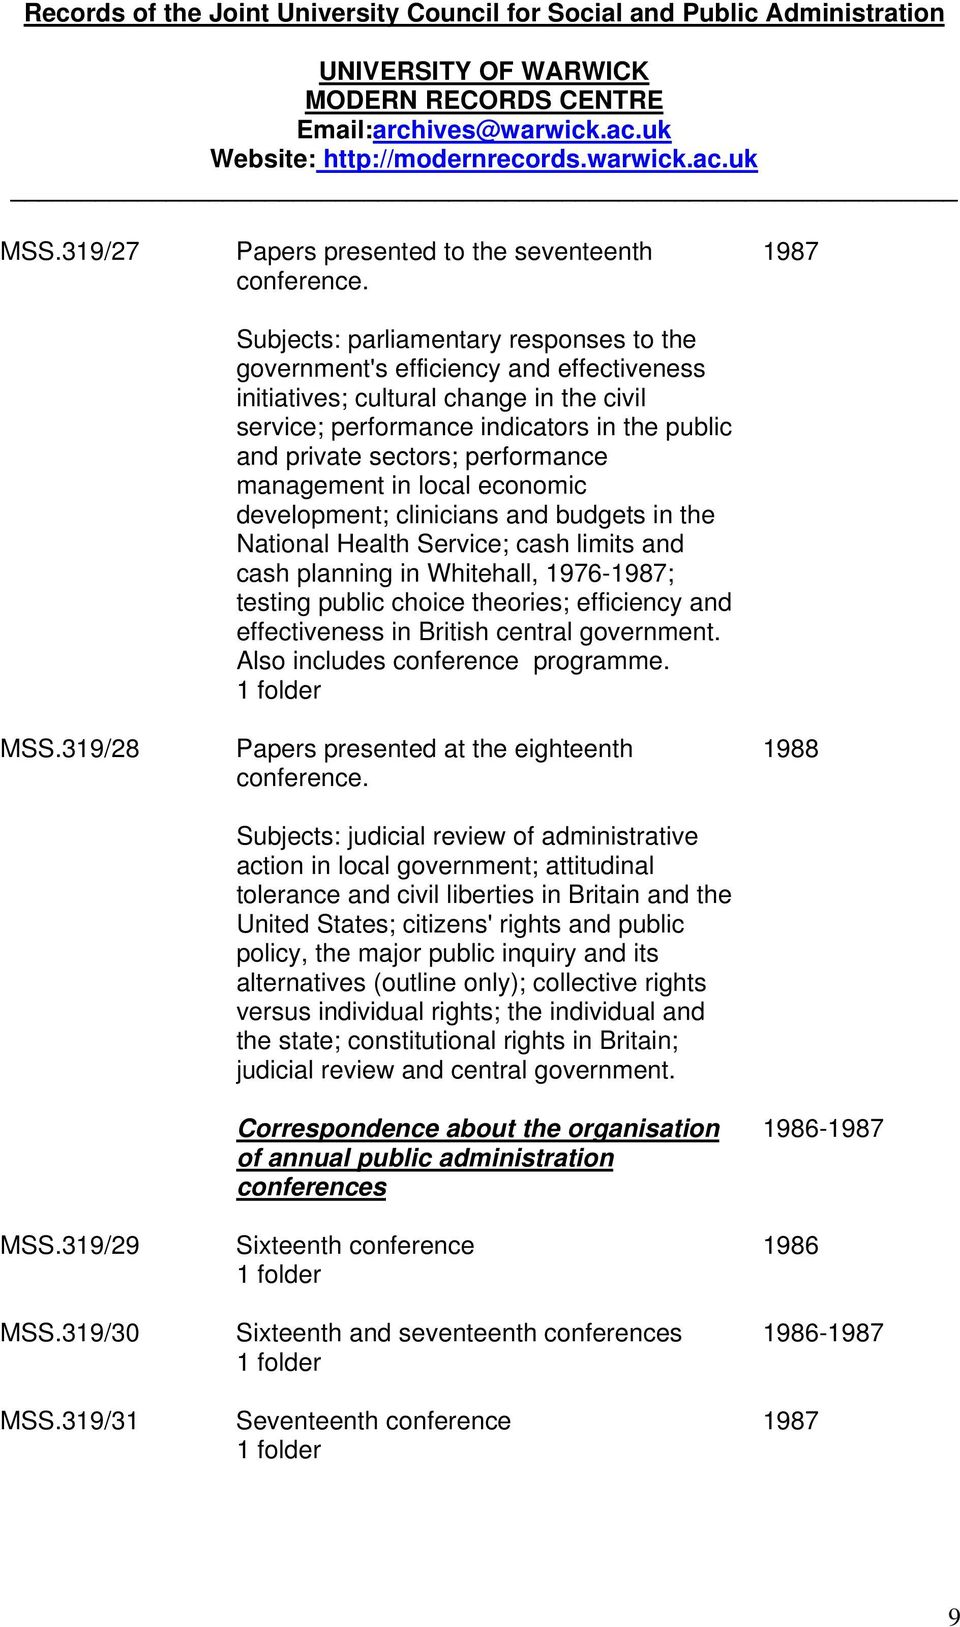 performance management in local economic development; clinicians and budgets in the National Health Service; cash limits and cash planning in Whitehall, 1976-1987; testing public choice theories;